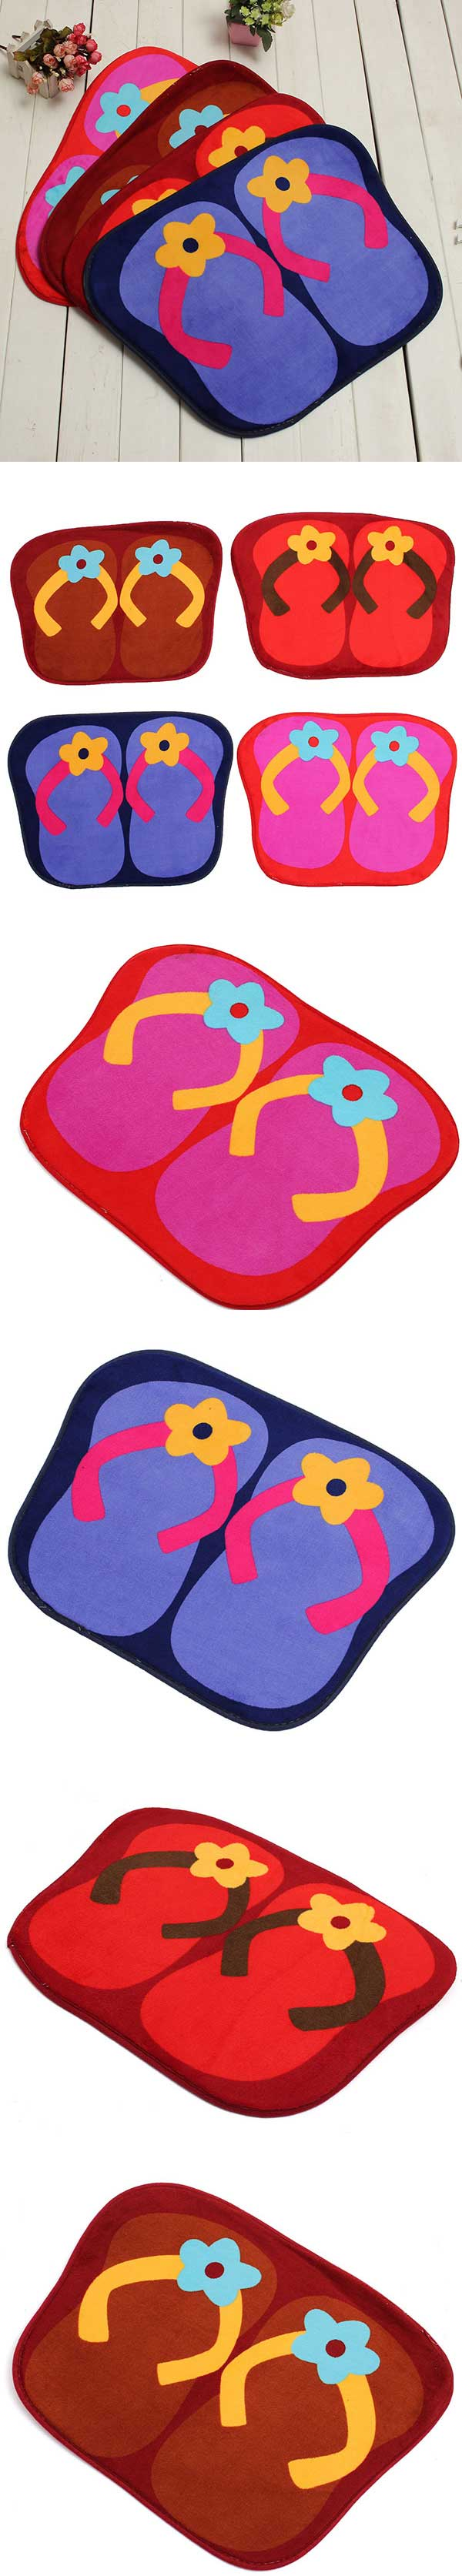 41x58cm Anti Slip Flip Flops Shape Lint Ground Mat Absorbent Bathroom Floor Door Carpet